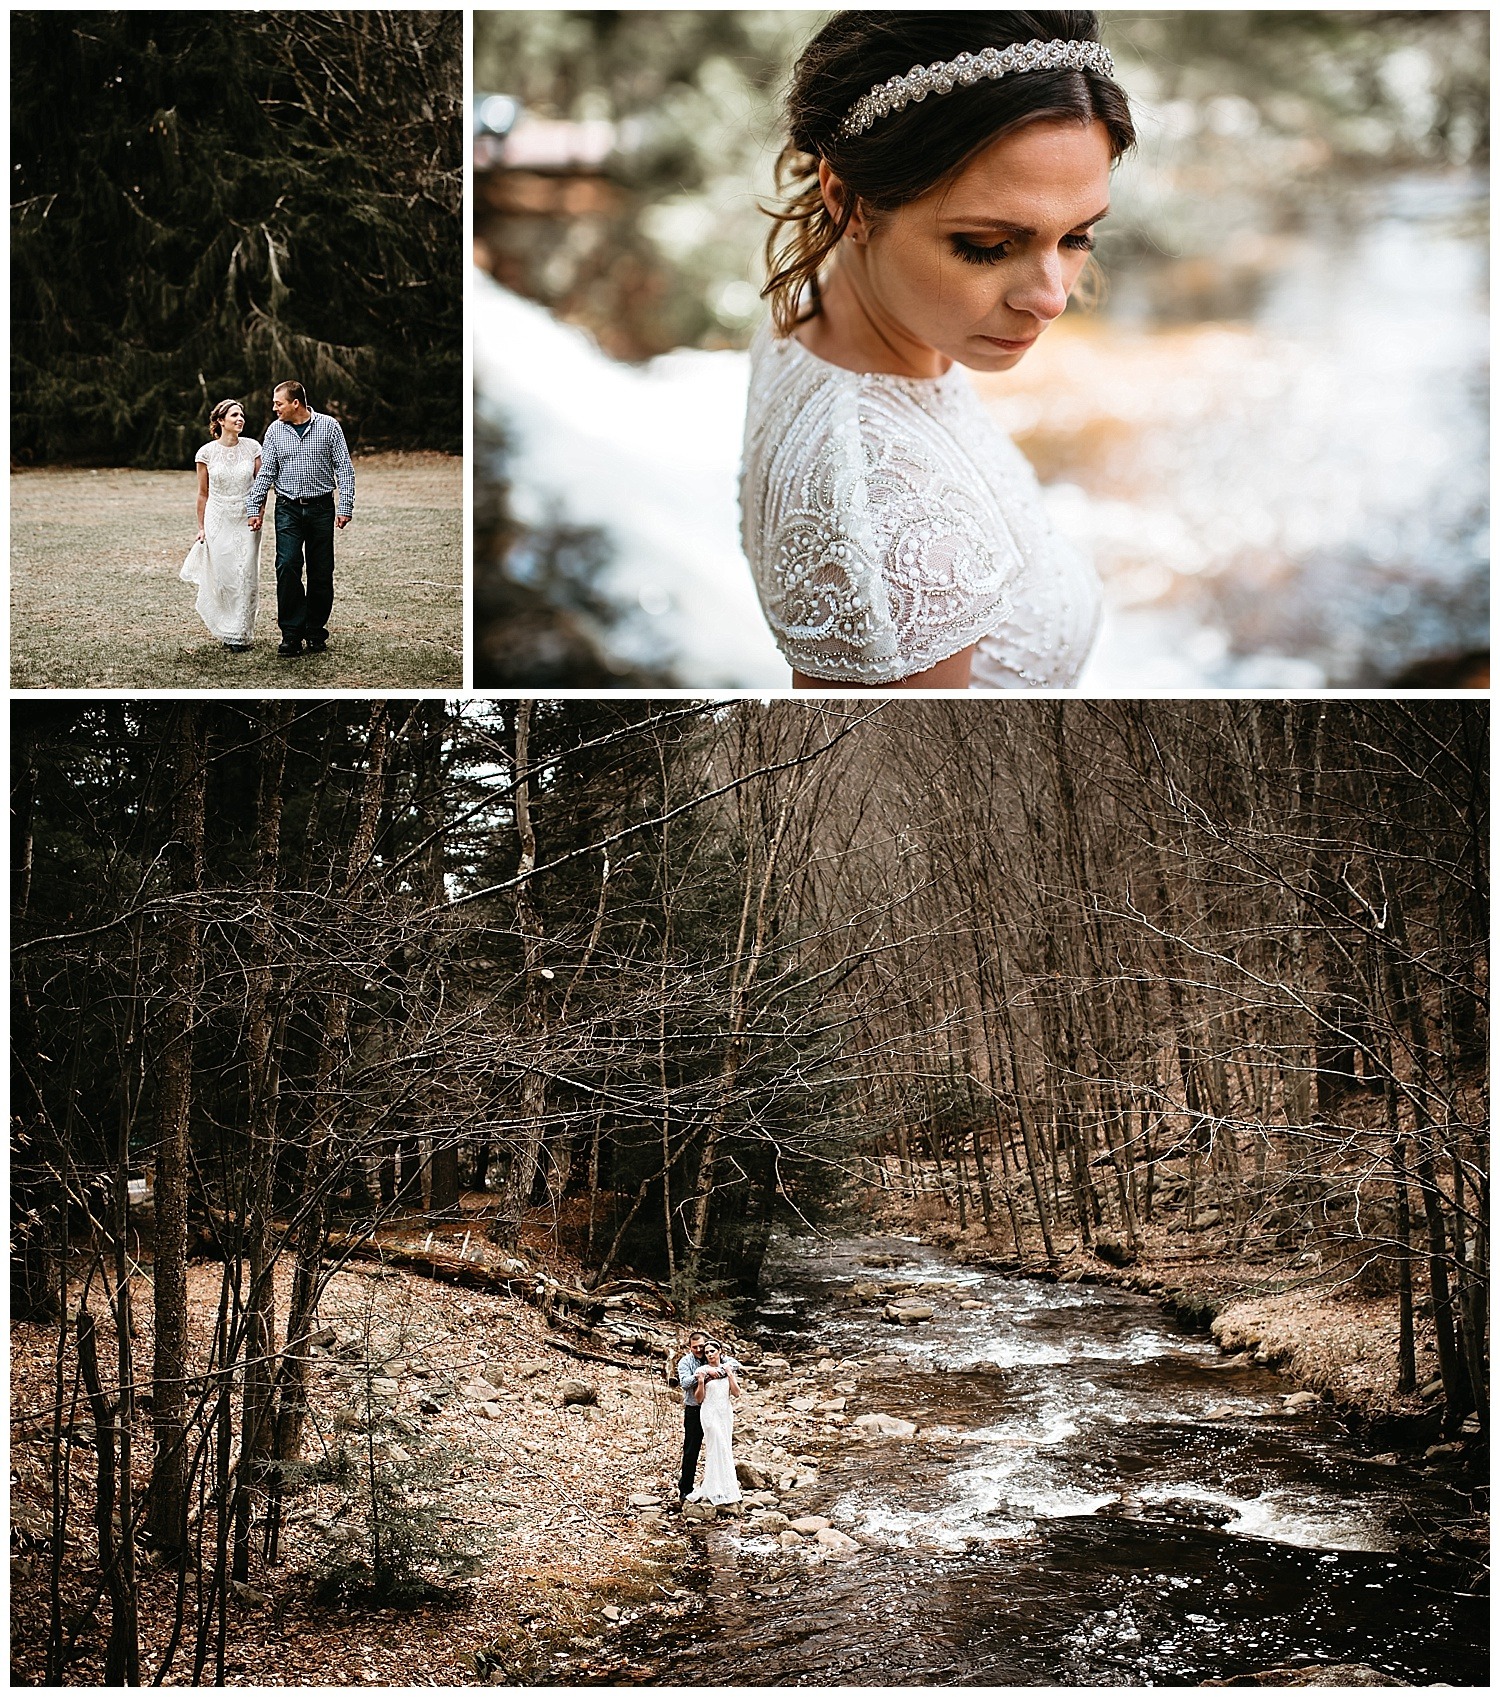 NEPA-Wedding-Engagement-photographer-hickory-run-state-park-hawk-falls-elopement_0027.jpg